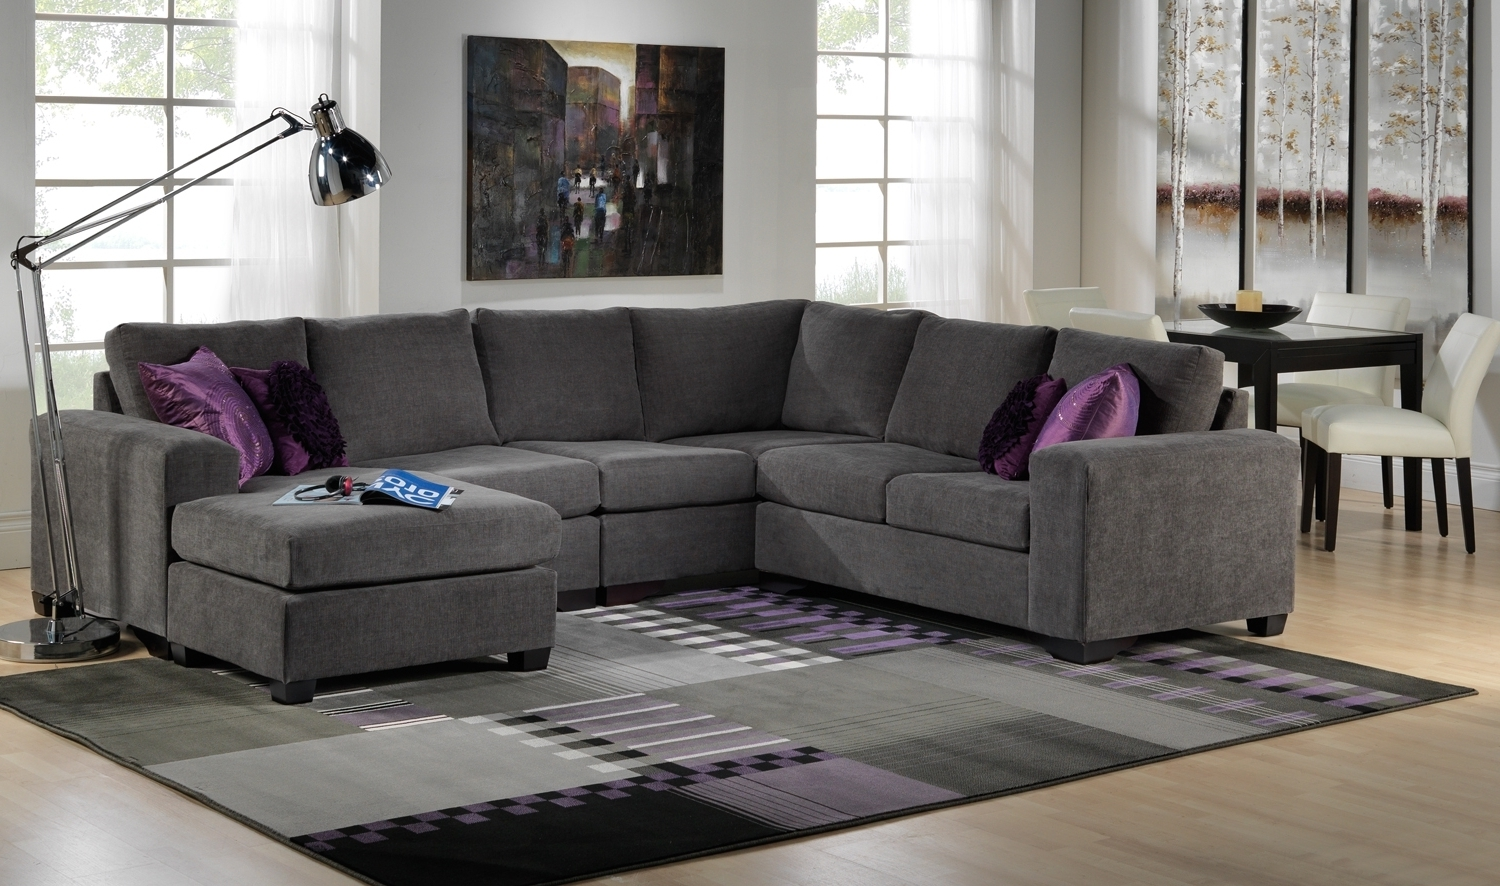 Leons Sectional Sofas Intended For Newest Leons Sofa Bed Sectional (View 9 of 20)